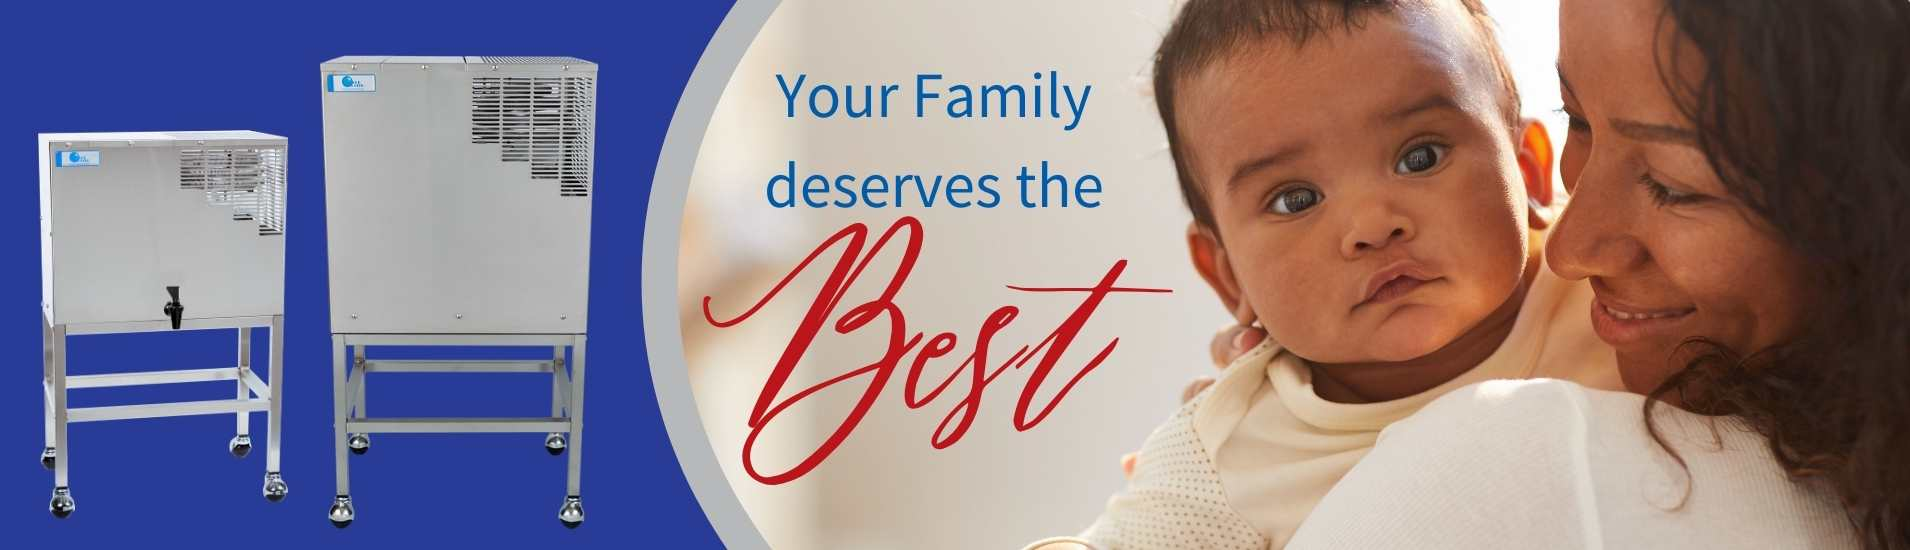 Your family deserves only the best water